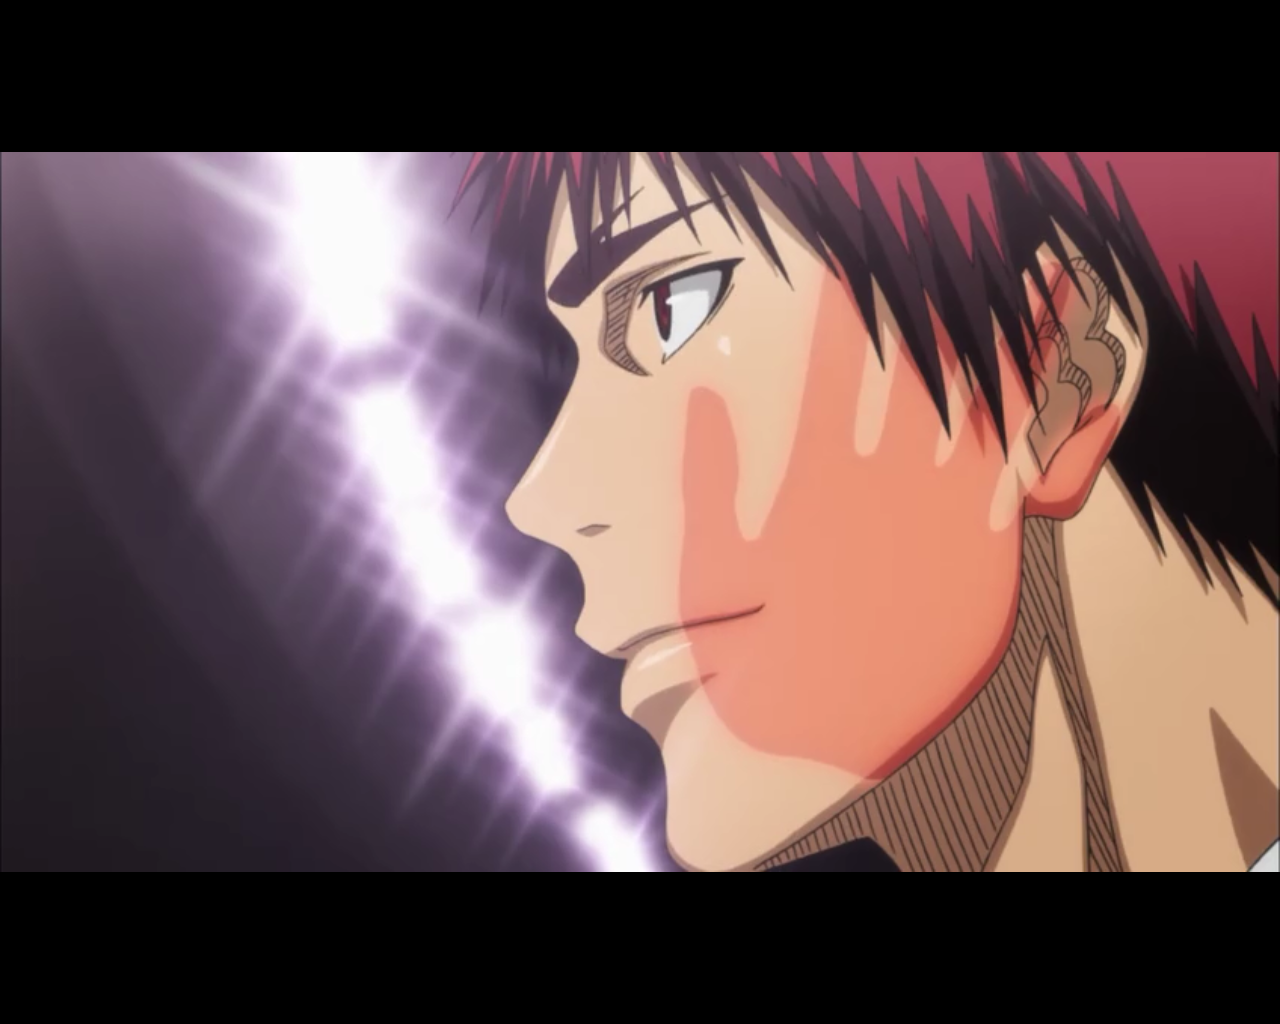 Download Kuroko No Basuke 2 Episode 20 Subtitle Indonesia